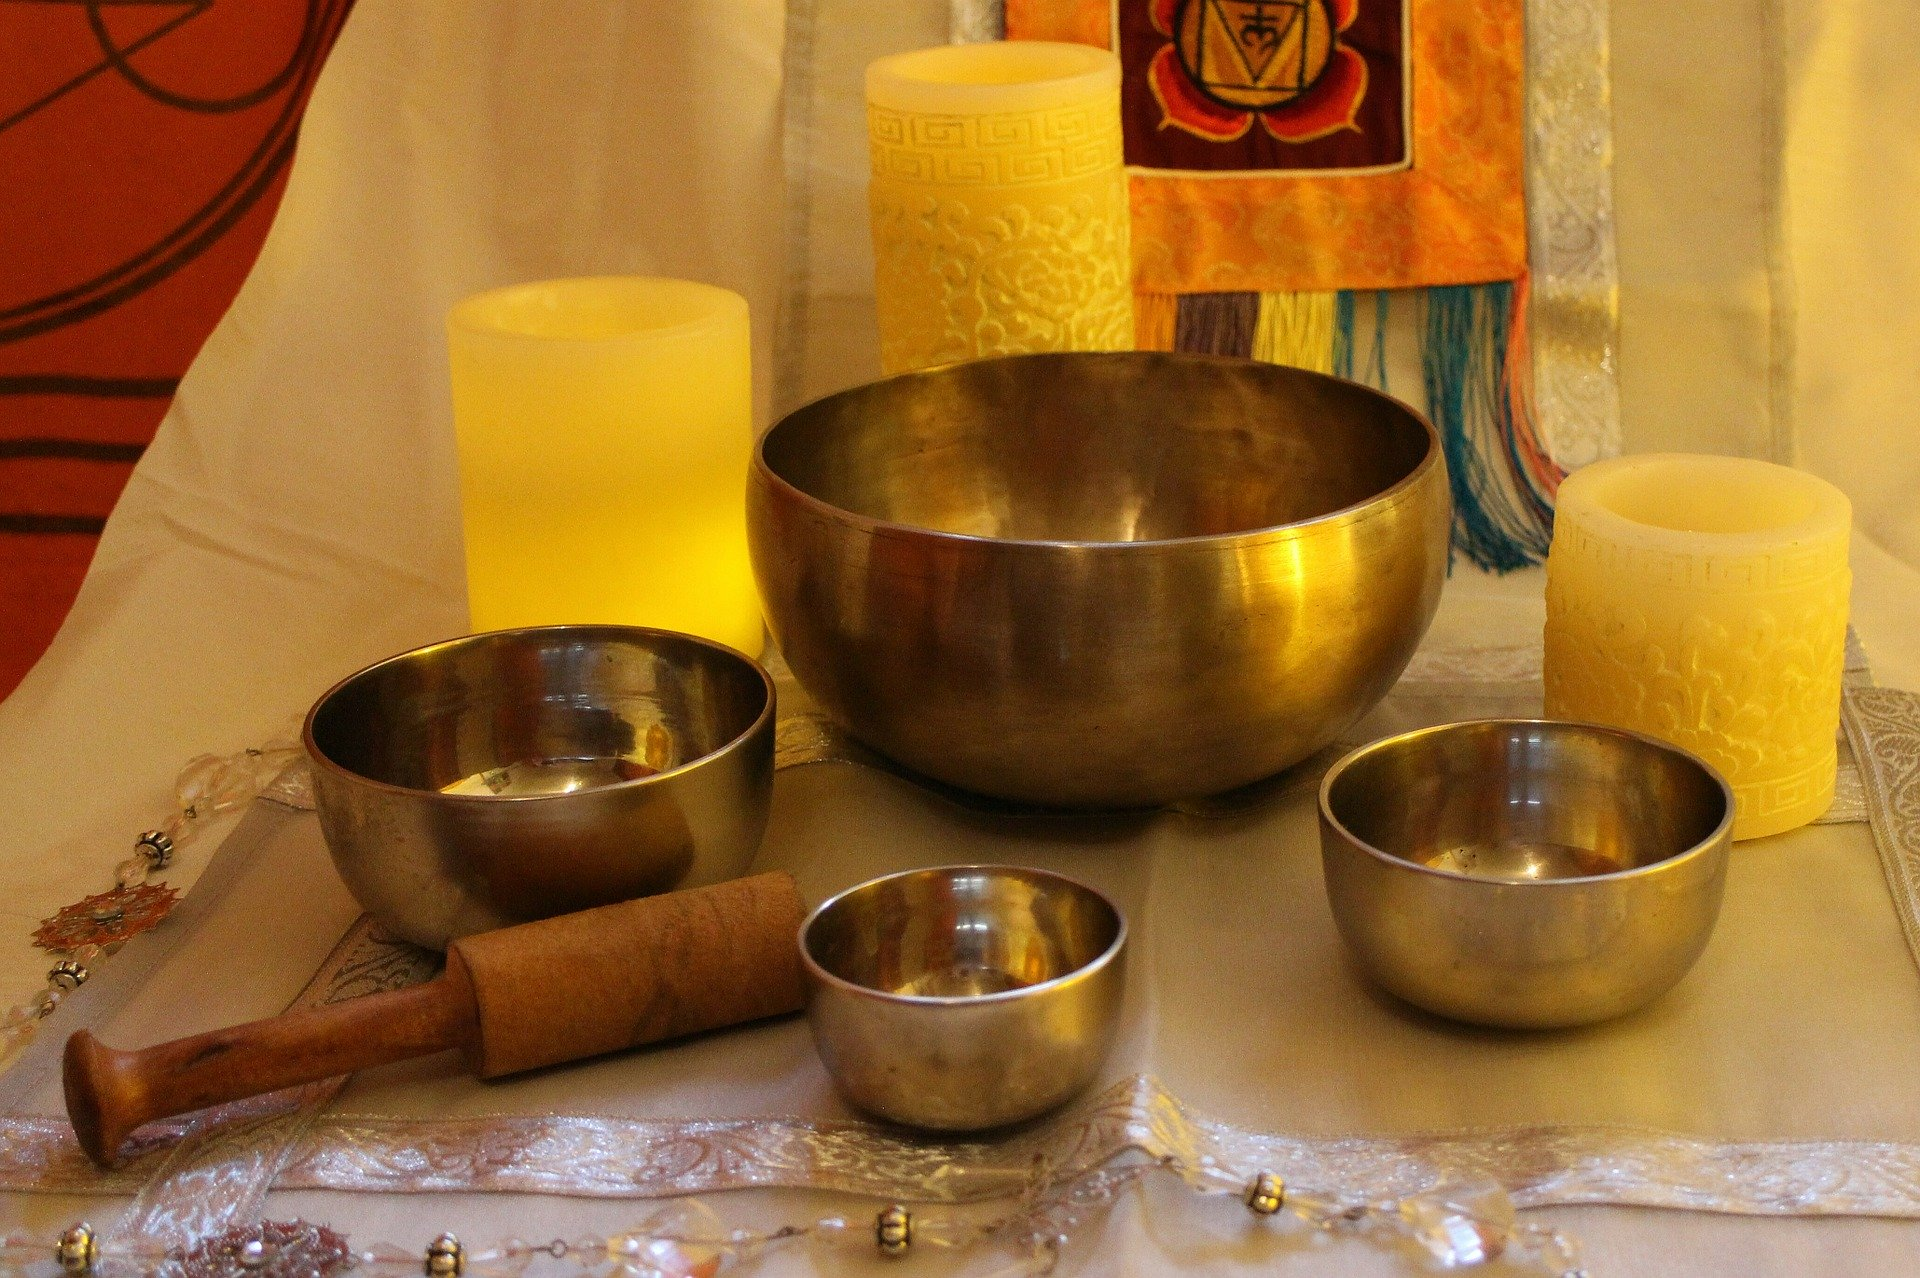 Miraculous Sound from Best Singing Bowls • We Blog The World